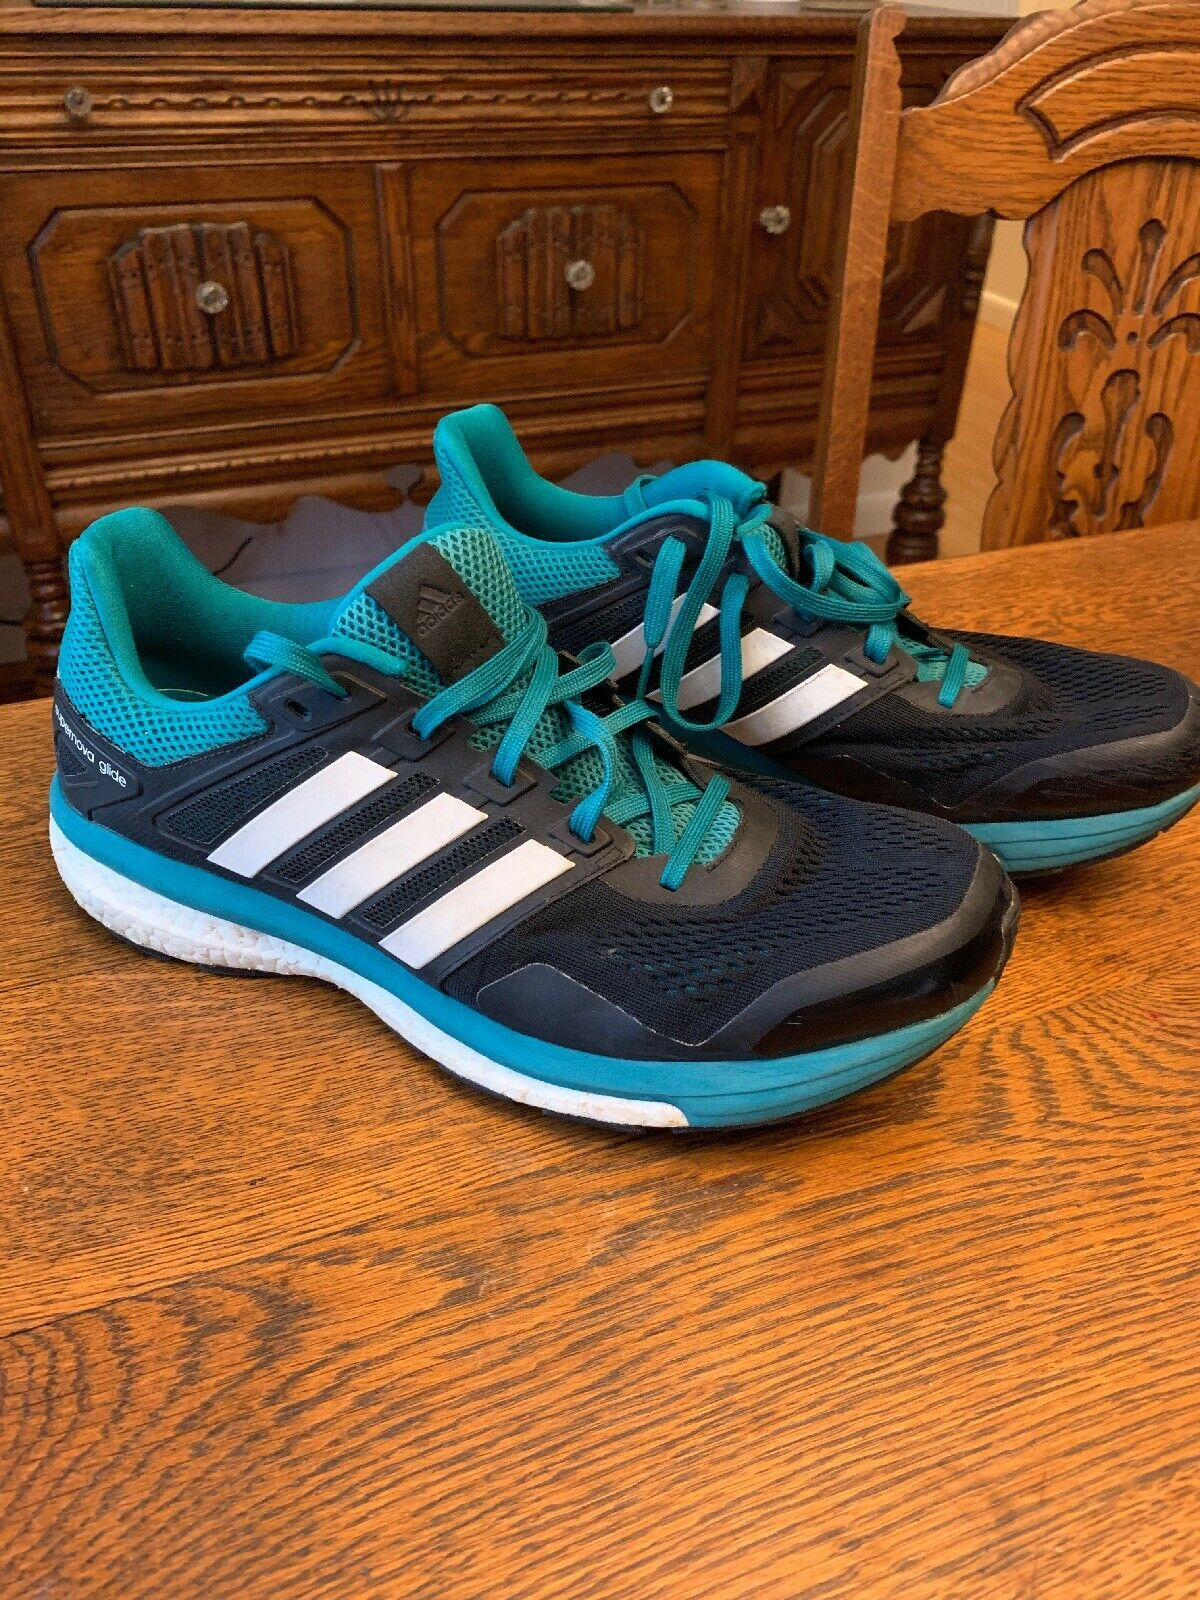 exclusive deals quality design lower price with Adidas Supernova Glide Boost 8 Sz 11.5 M (D) Men's Running Shoes Green And  Black